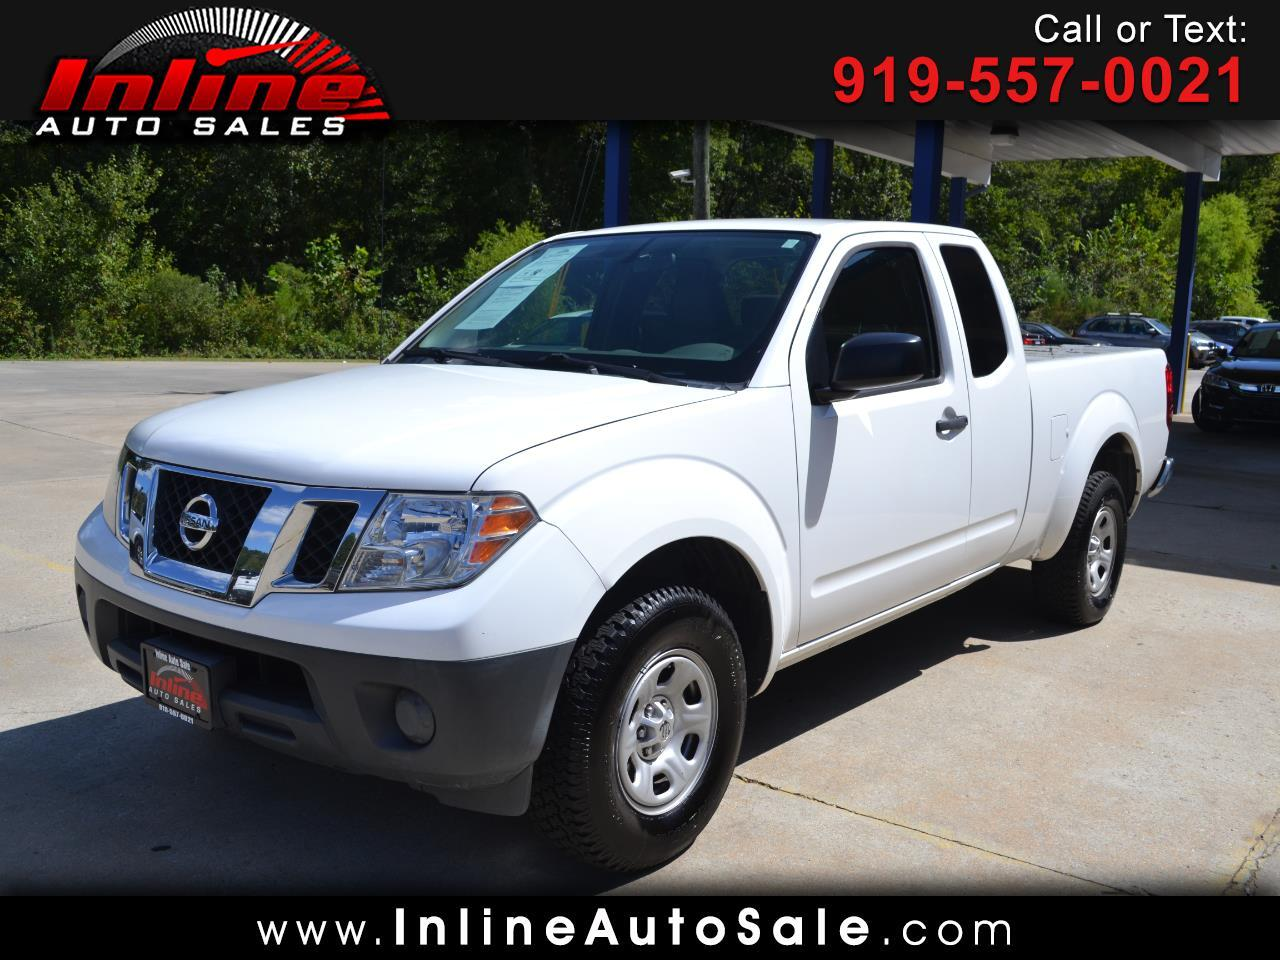 2010 Nissan Frontier 2WD King Cab I4 Auto XE